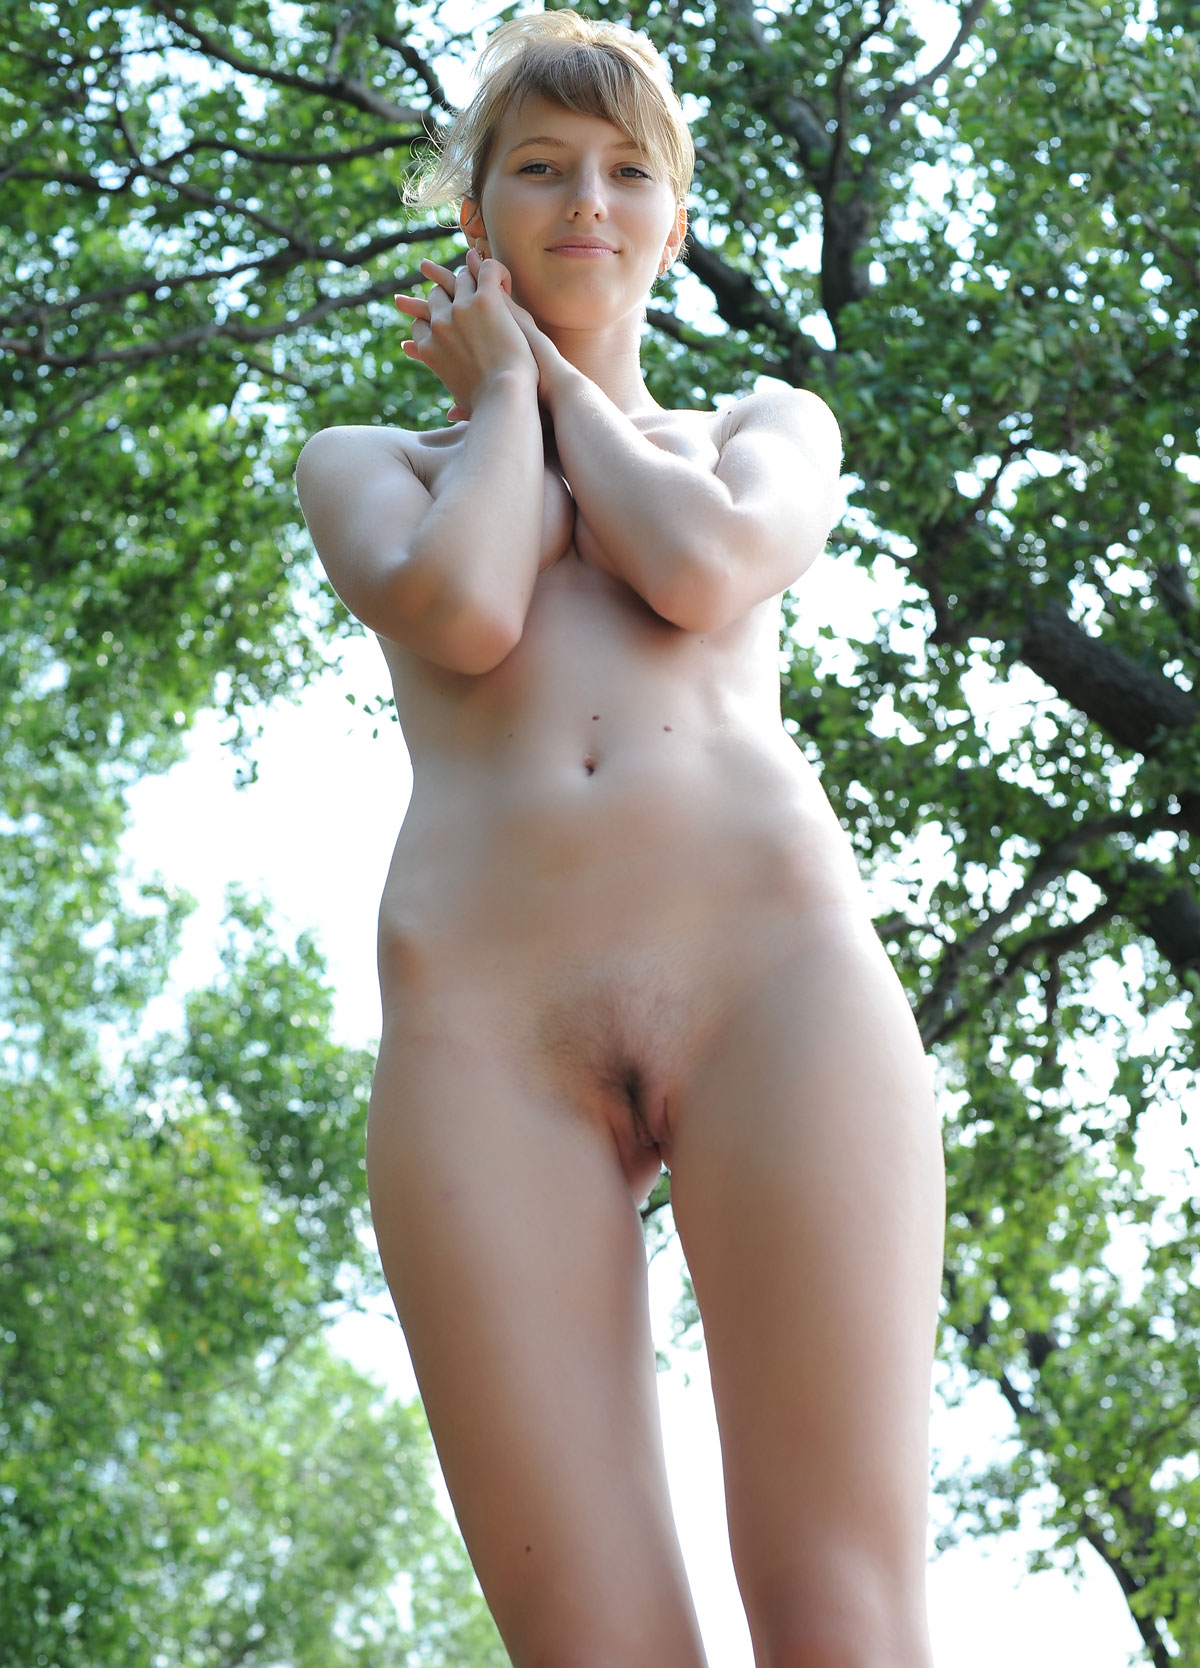 83net young naked $